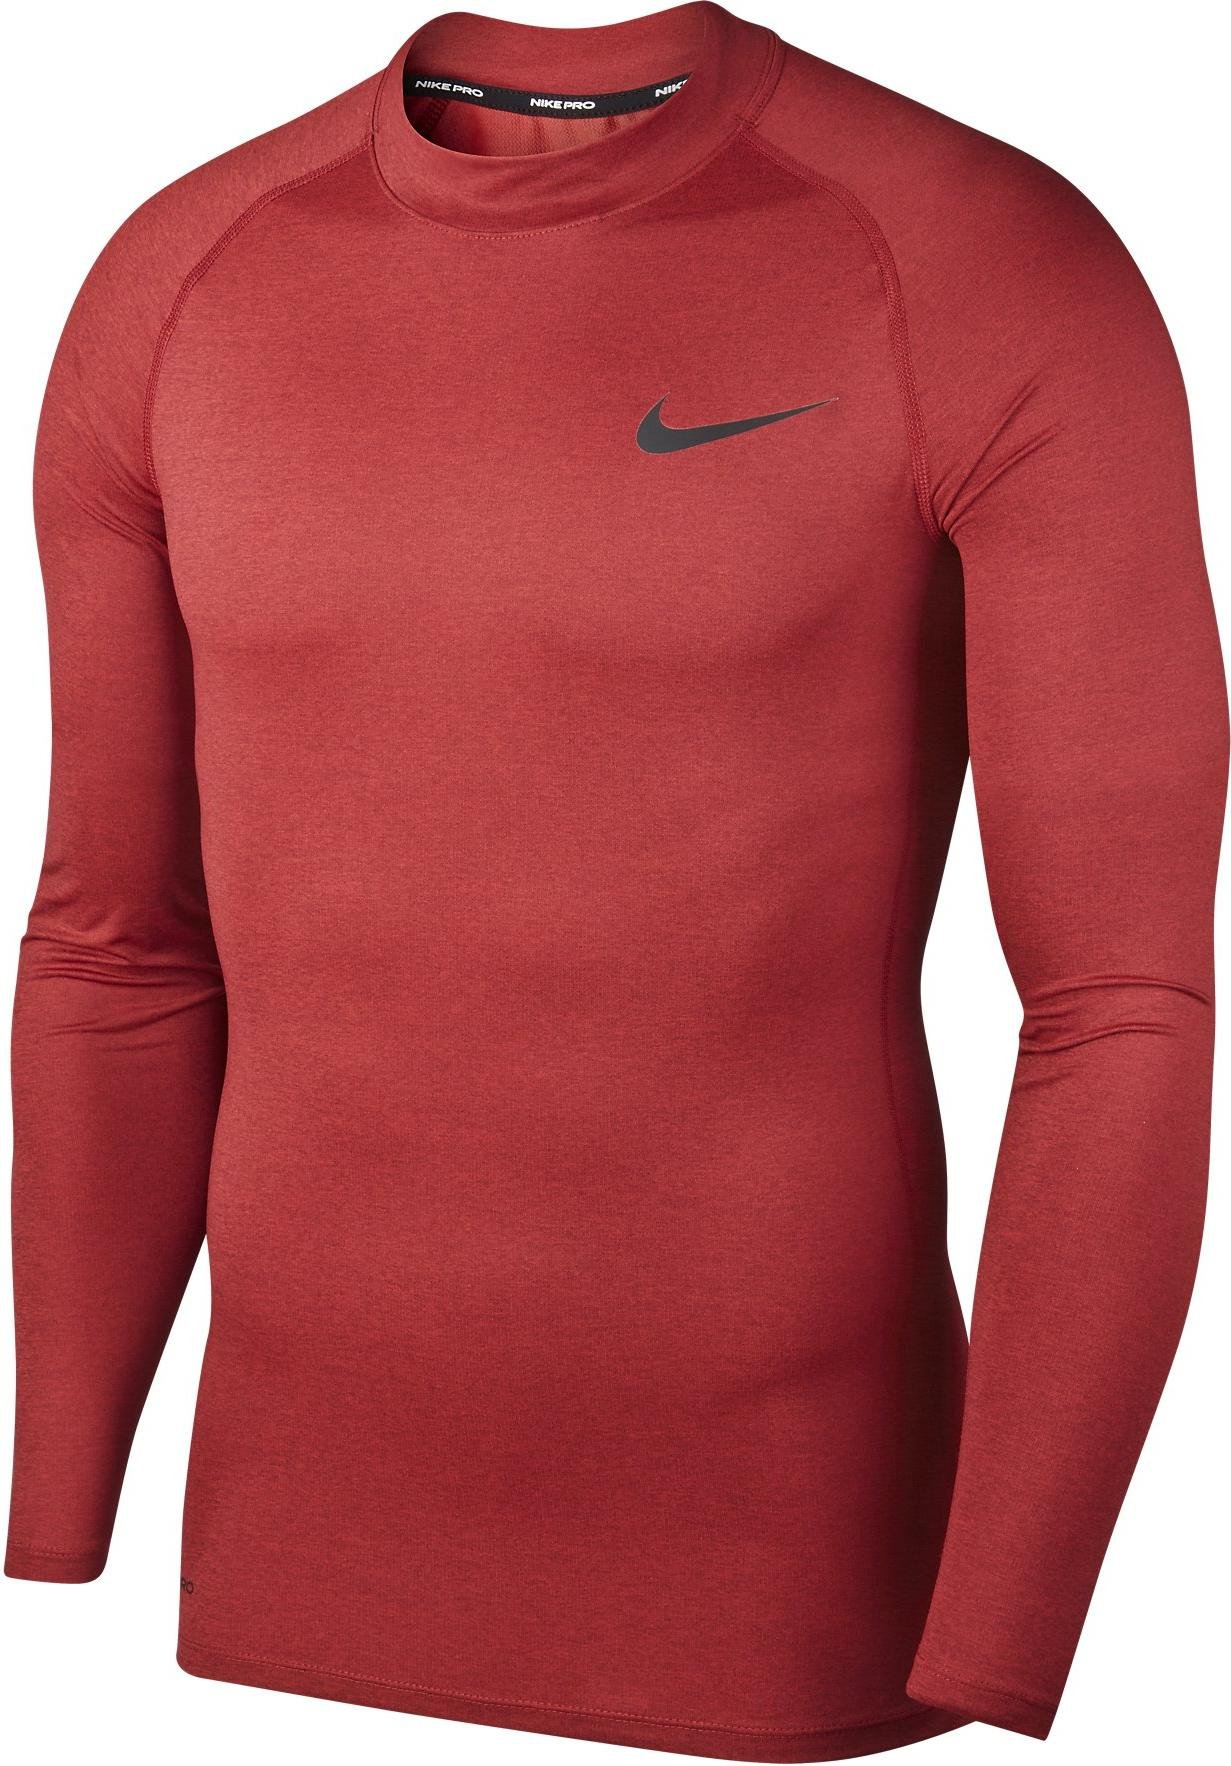 Langarm-T-Shirt Nike M NP TOP LS TIGHT MOCK